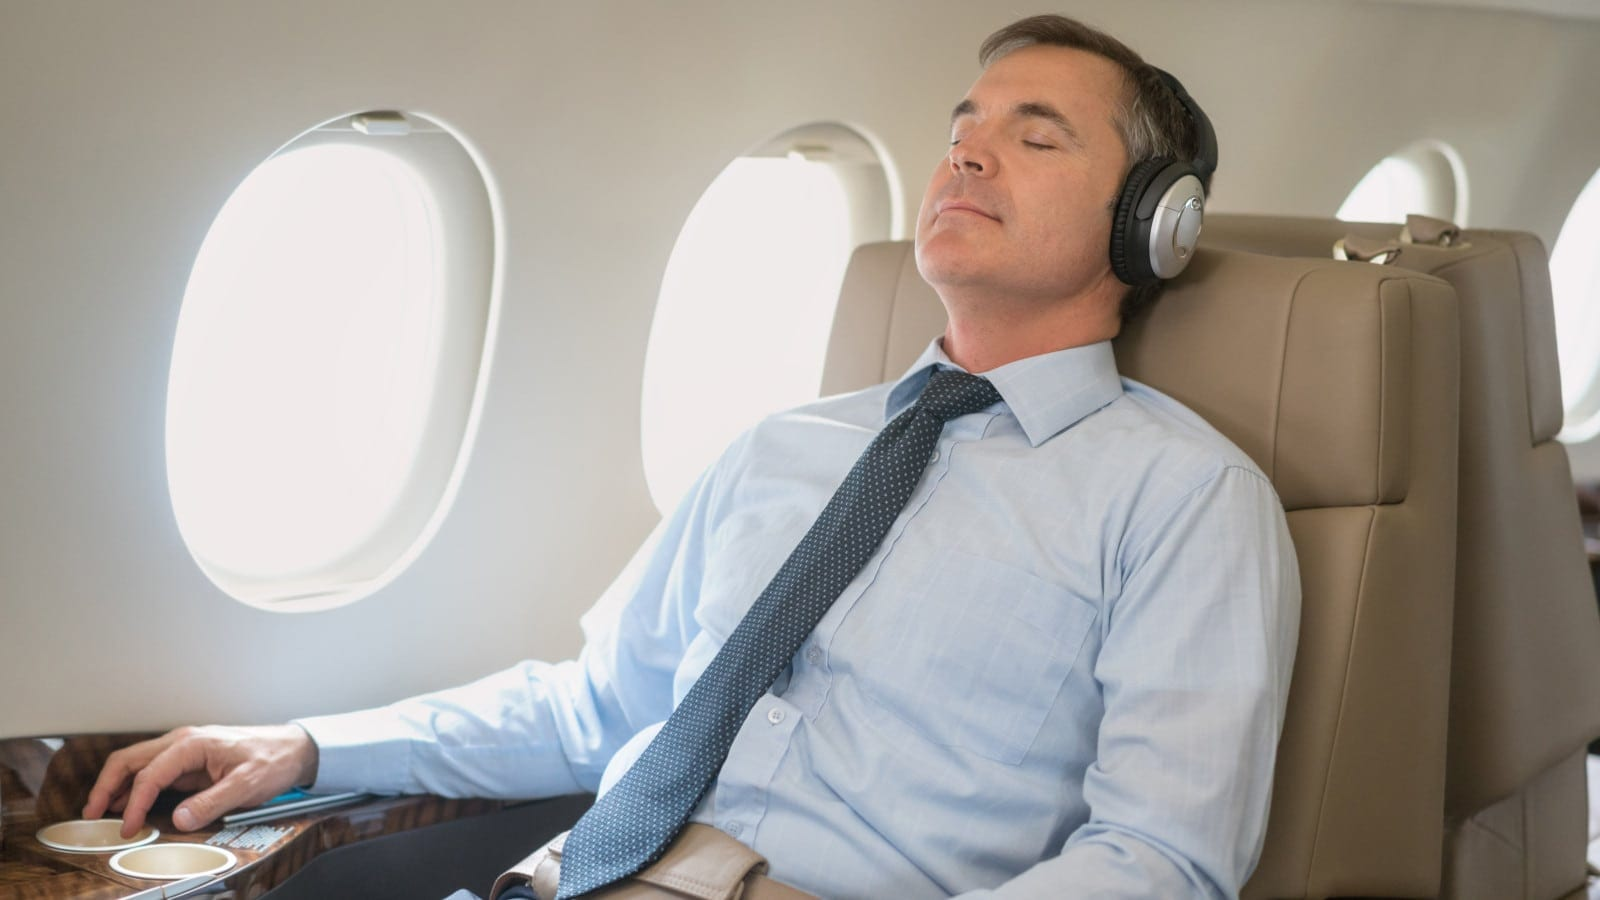 Male Passenger Resting On An Airplane Stock Photo